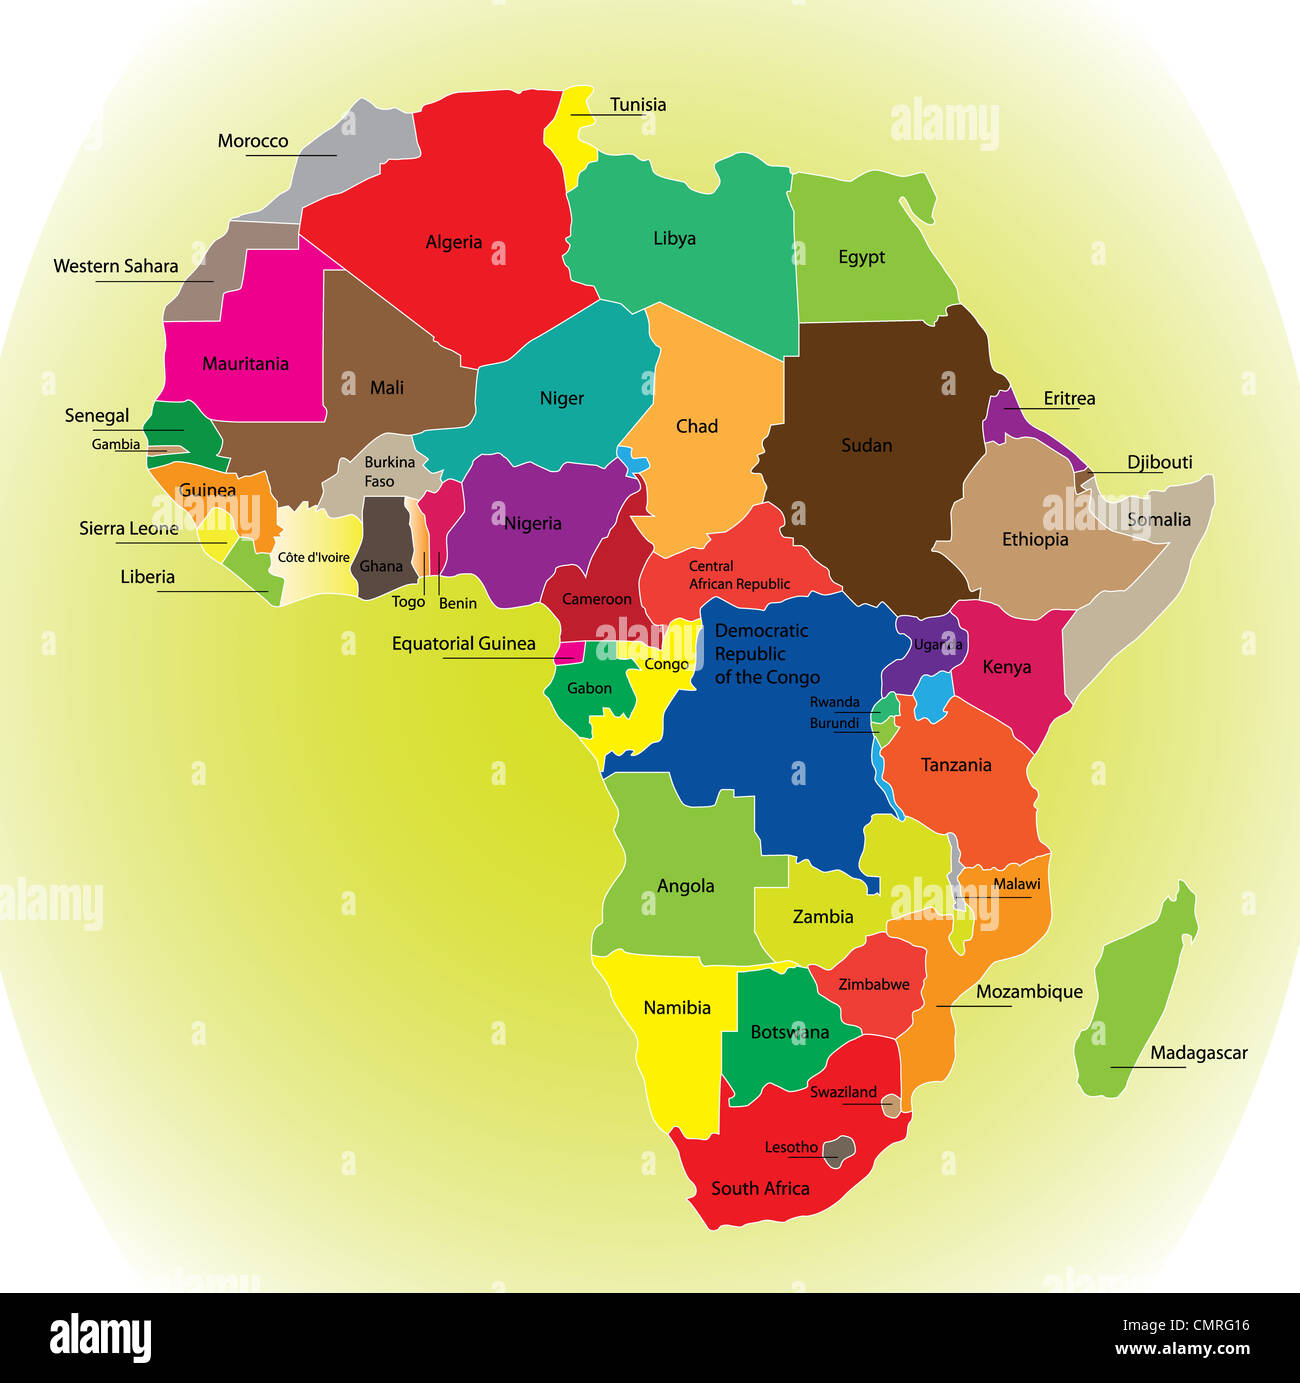 Detail Color Map Of African Continent With Borders Each State Is